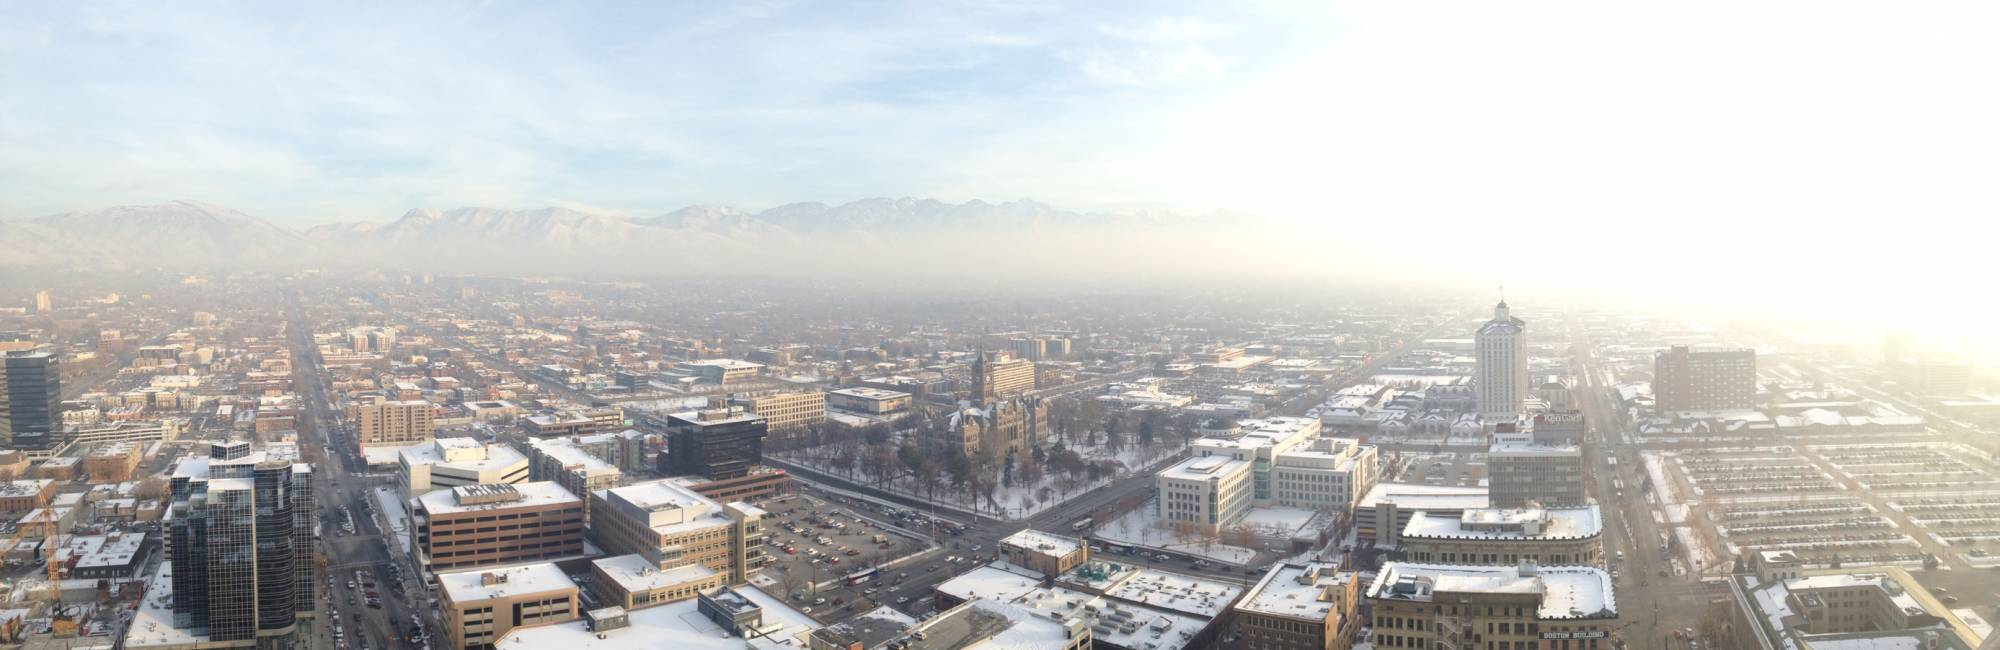 Salt Lake City air quality